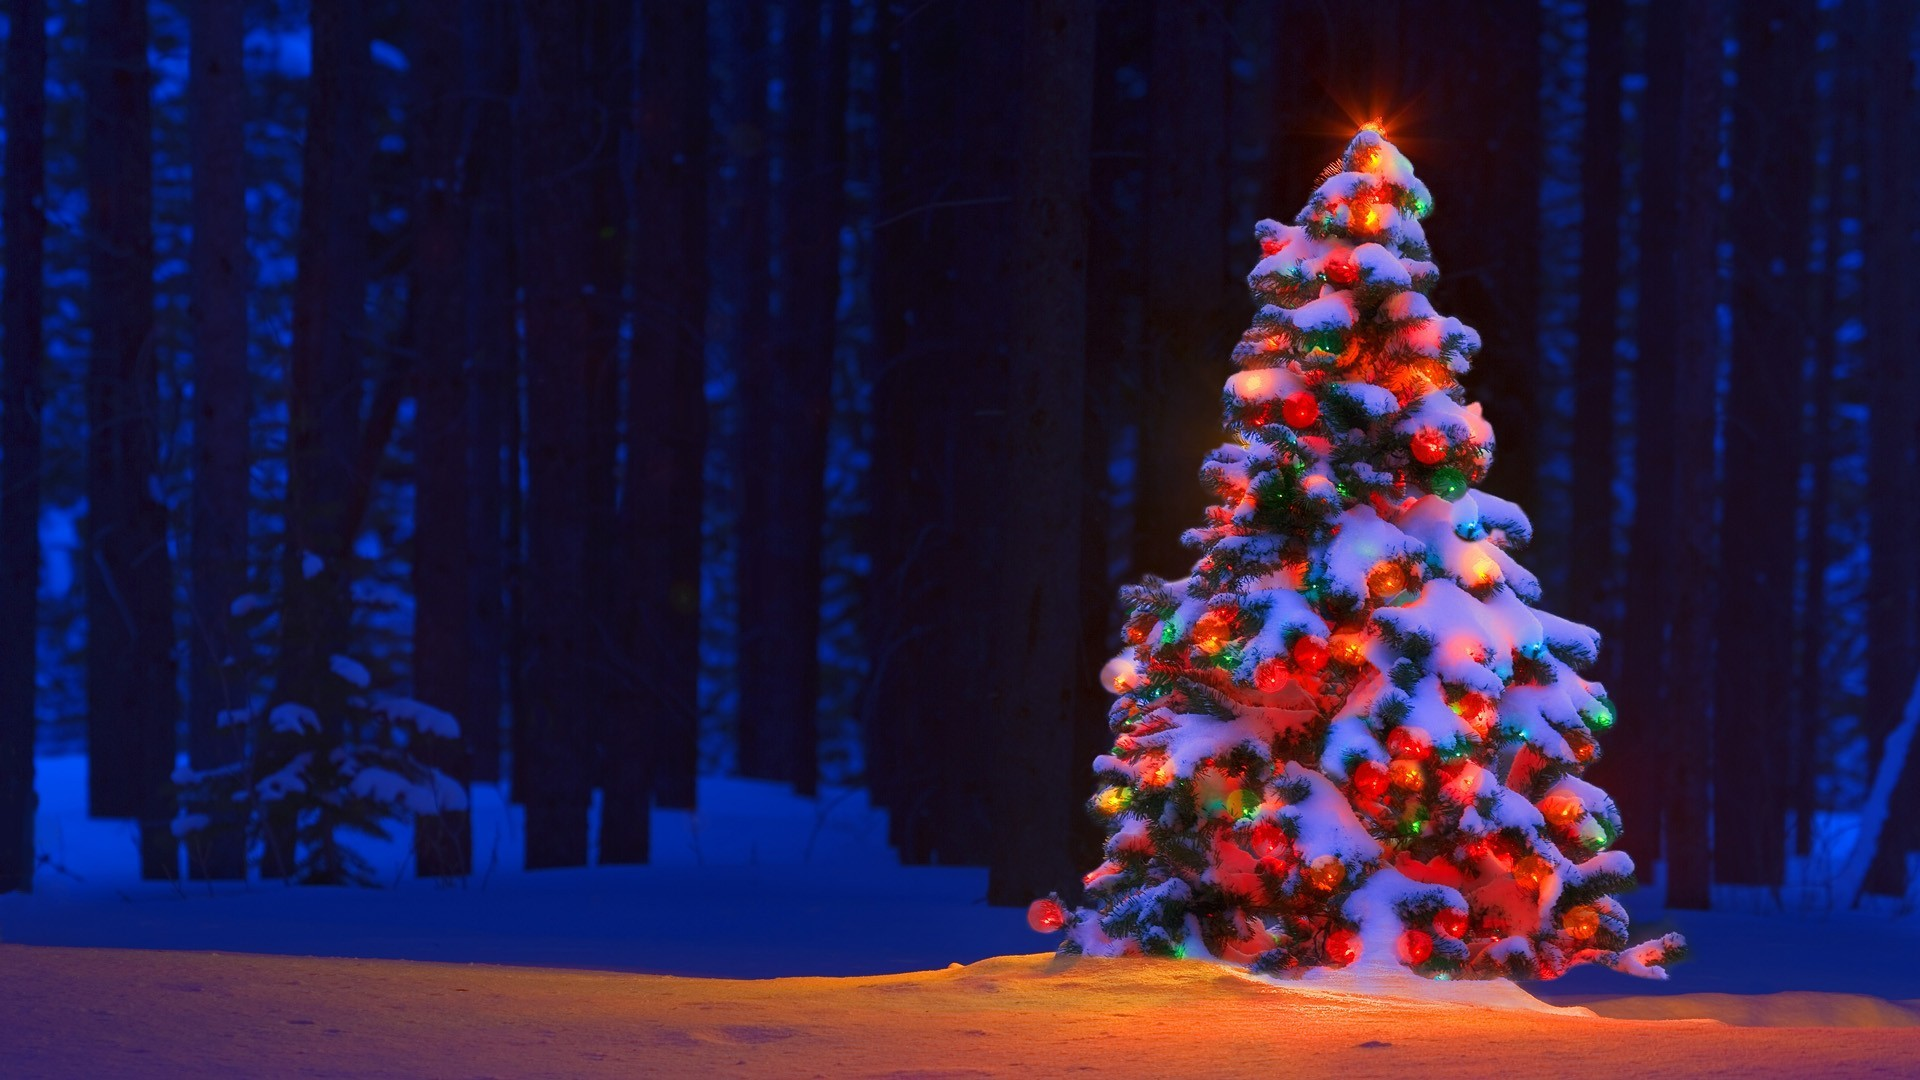 Christmas Pc Wallpaper 54 Images